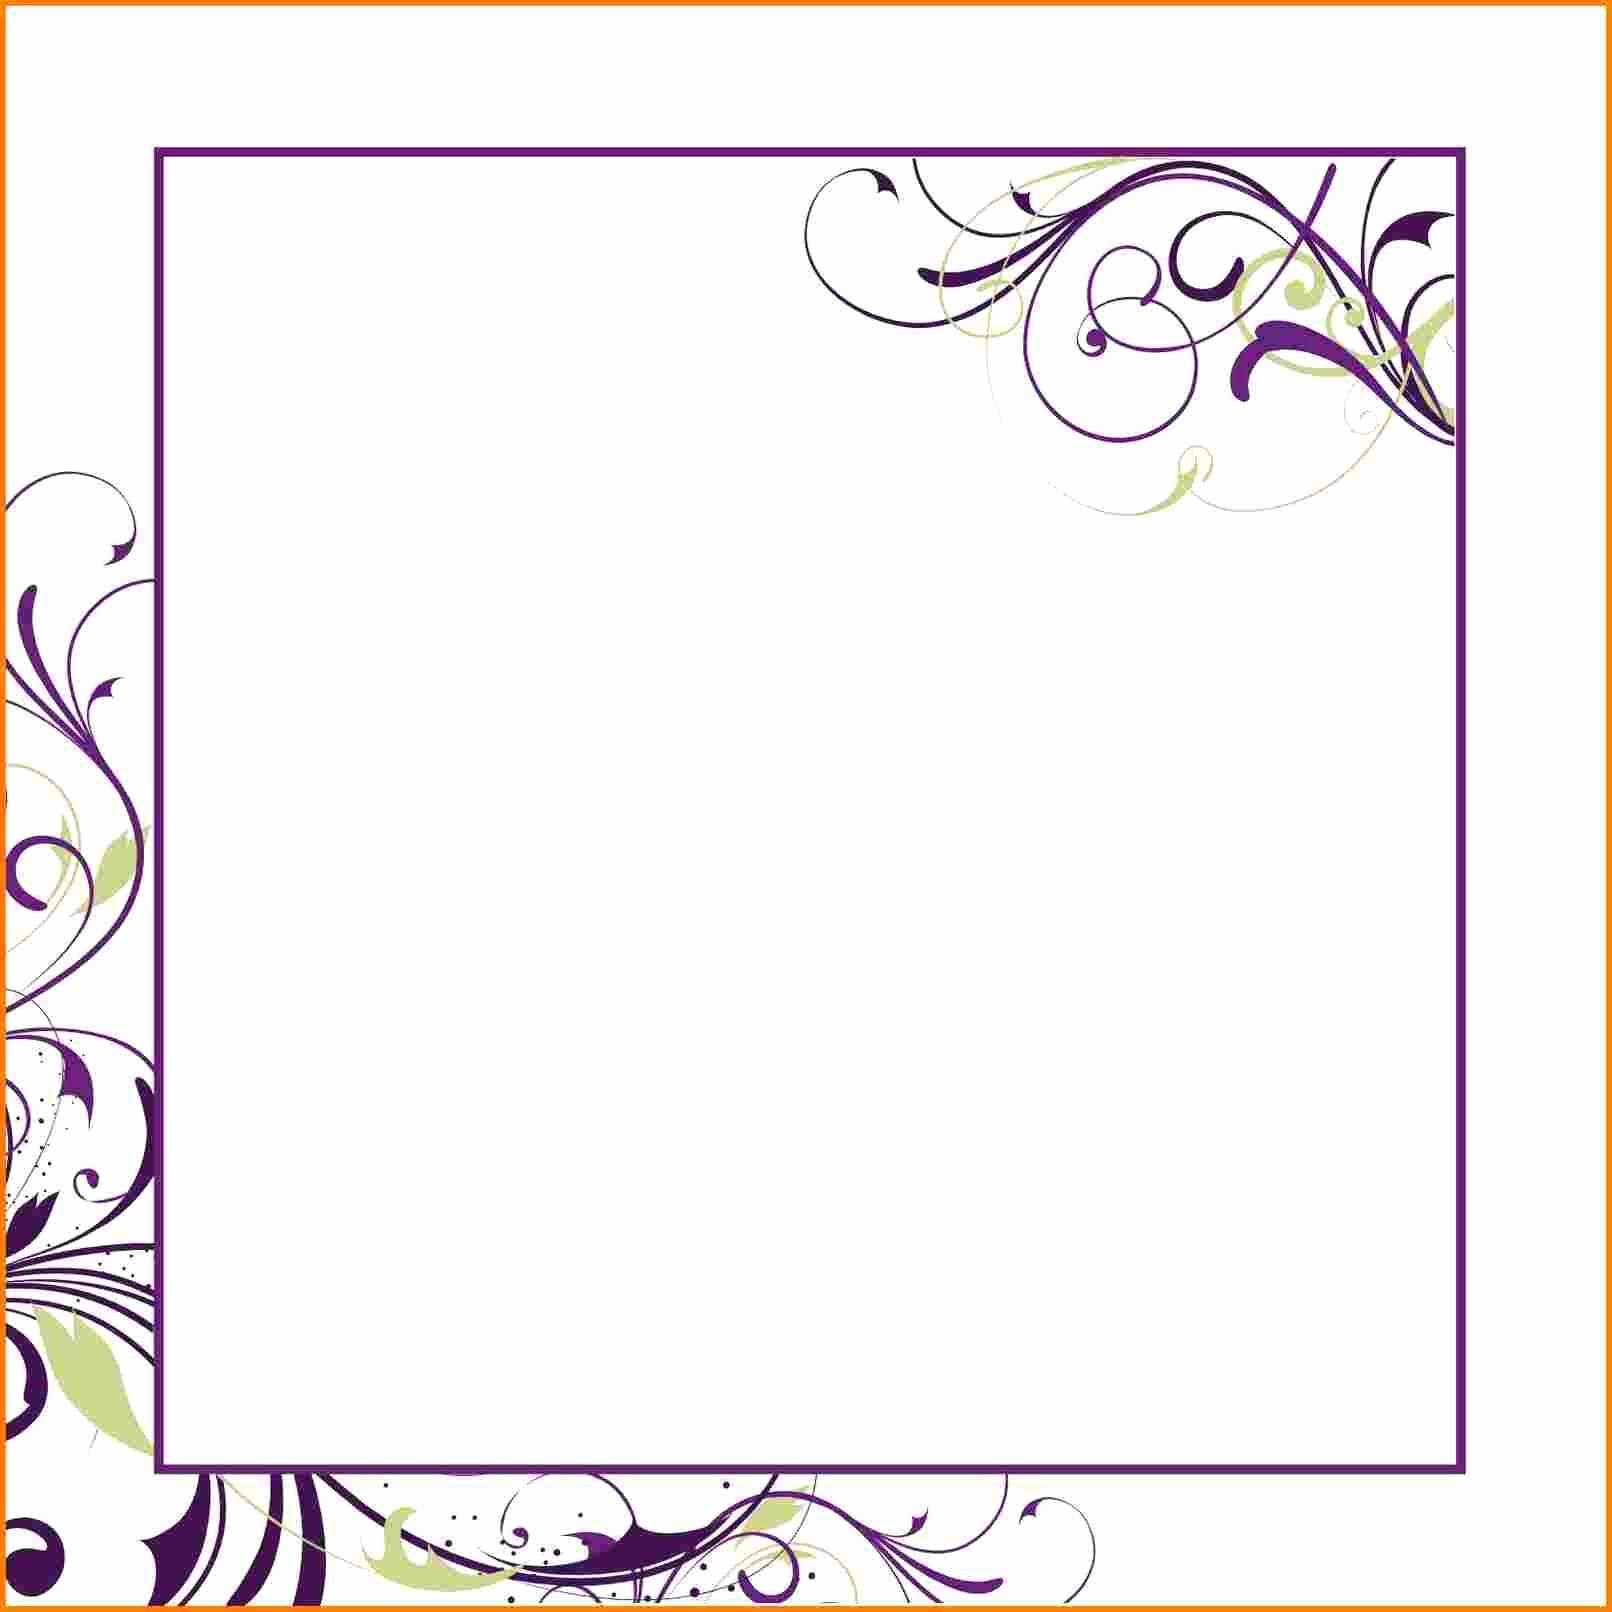 Word Template for Invitations Inspirational Blank Invitation Template for Word – orderecigsjuicefo